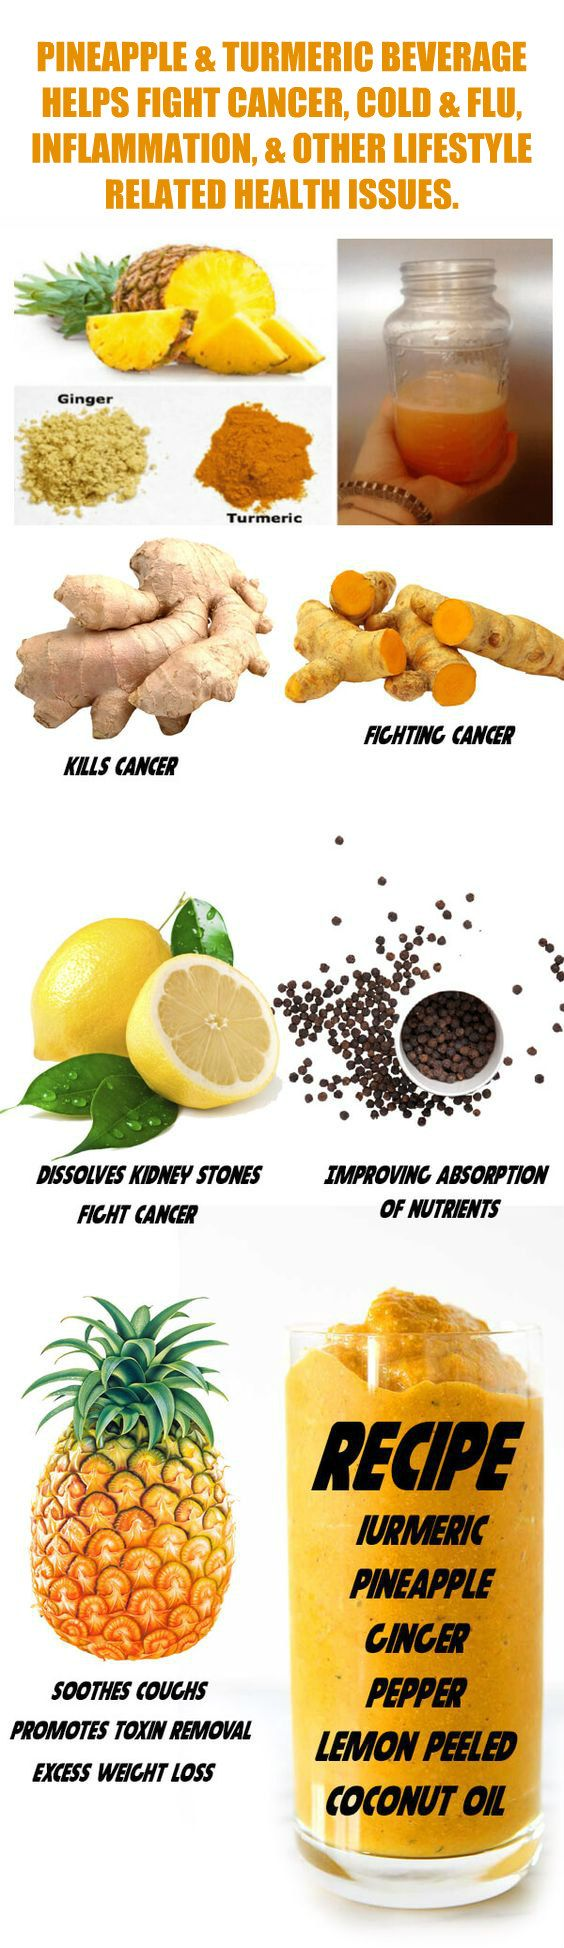 Pineapple & Turmeric Drink Health Benefits. Learn about alkaline rich Kangen Water; it's antioxidant loaded, hydrogen rich, ionized water that neutralizes free radicals which cause oxidative stress that can lead to disease such as cancer. Many medical exp http://www.buzzblend.com